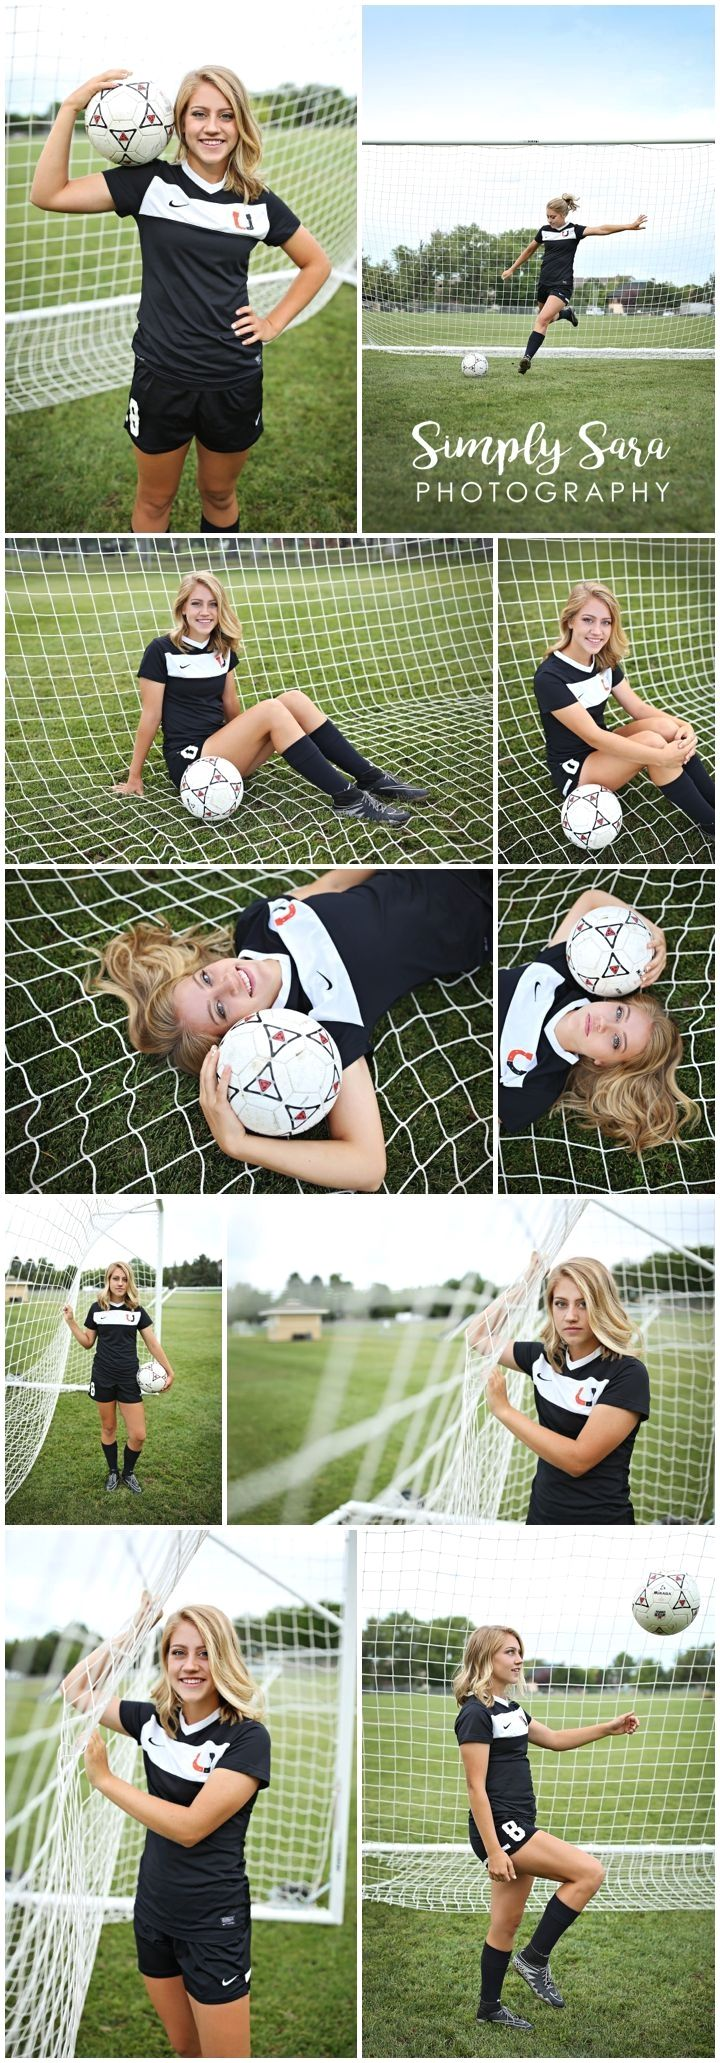 Great soccer tips there are plenty of soccer tips that